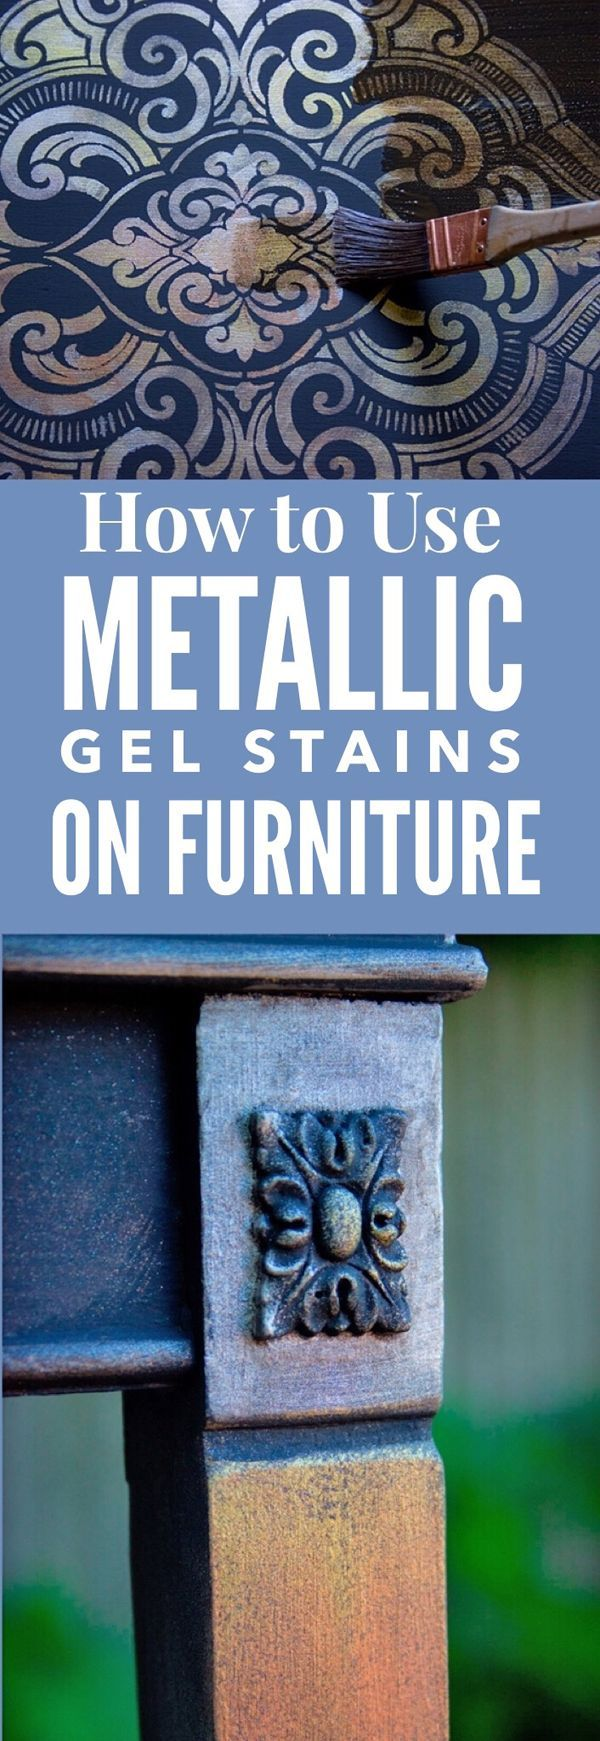 Gel stains oil based saah furniture - How To Use Metallic Gel Stains On Furniture Thicketworks For Graphics Fairy Brought To